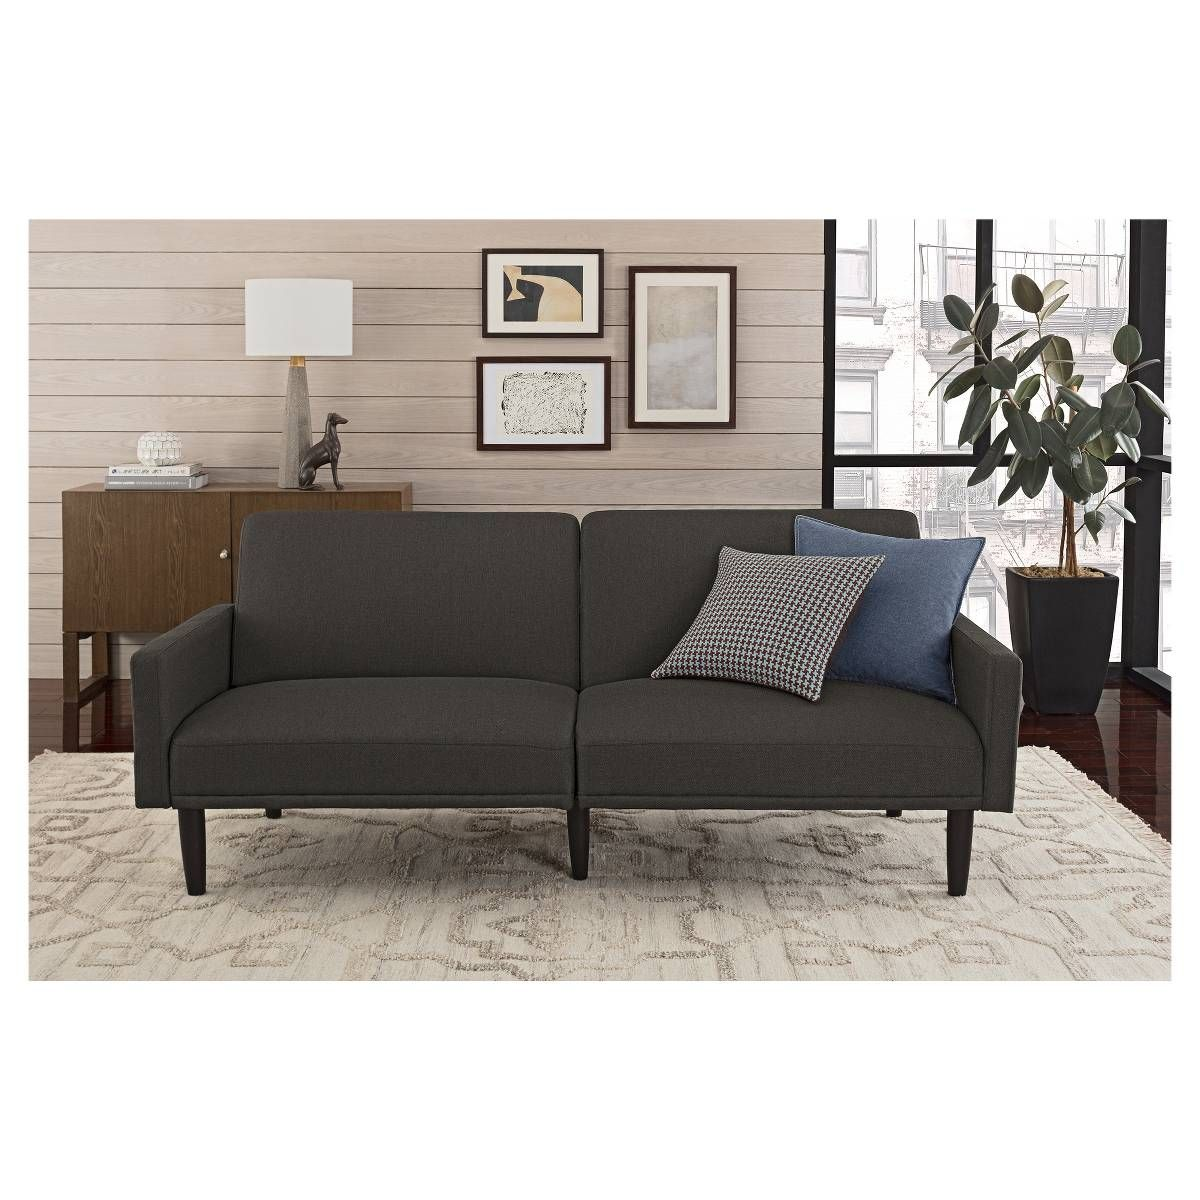 Find Product Information Ratings And Reviews For Linen Futon With Arms Gray Room Essentials Online On Target Com